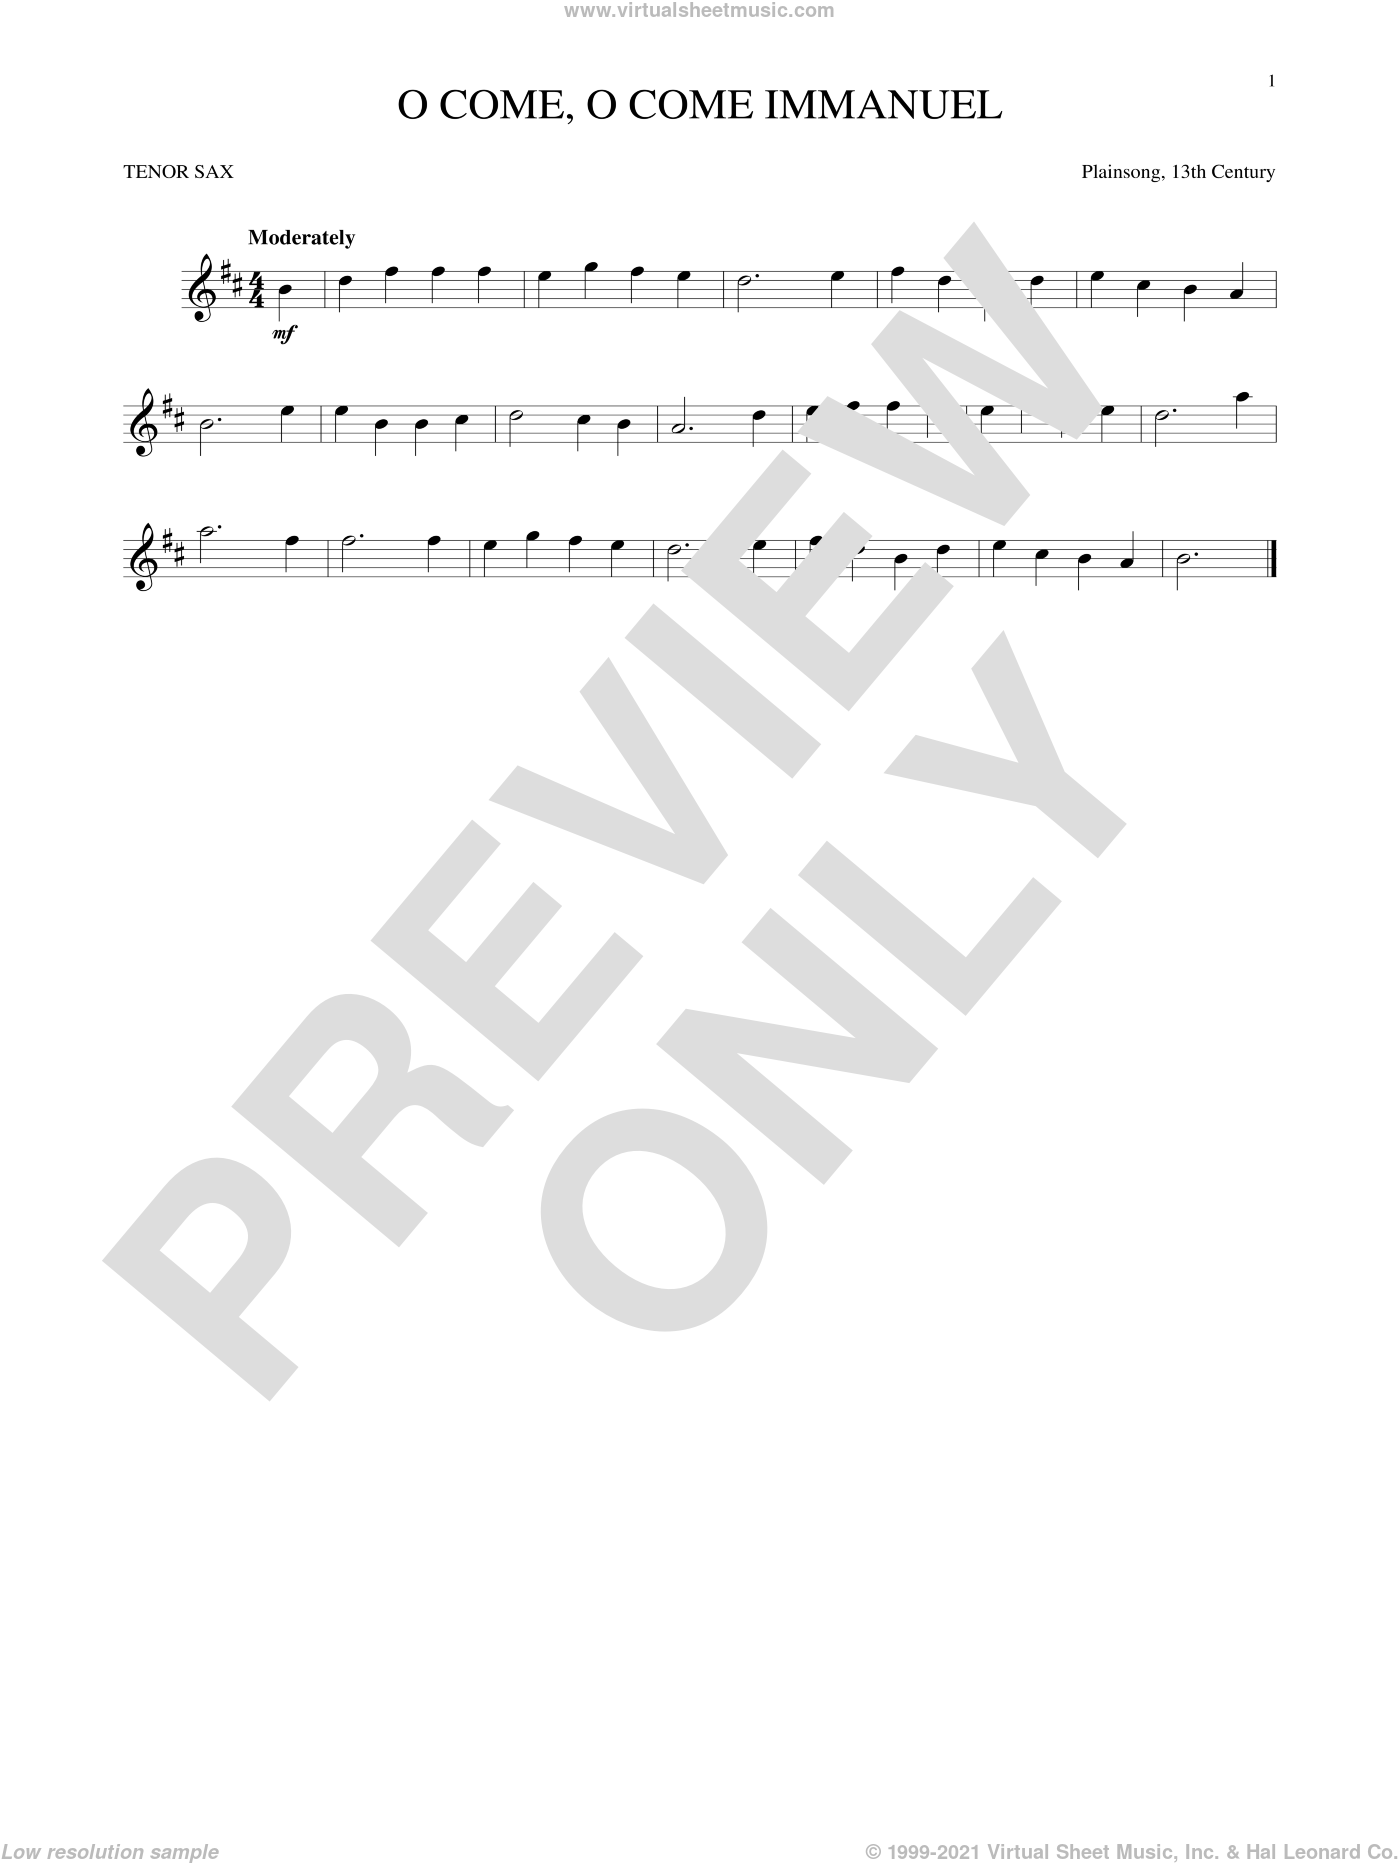 O Come, O Come Immanuel sheet music for tenor saxophone solo by Plainsong, 13th Century, Henry S. Coffin (trans.) and John M. Neale (trans), intermediate skill level